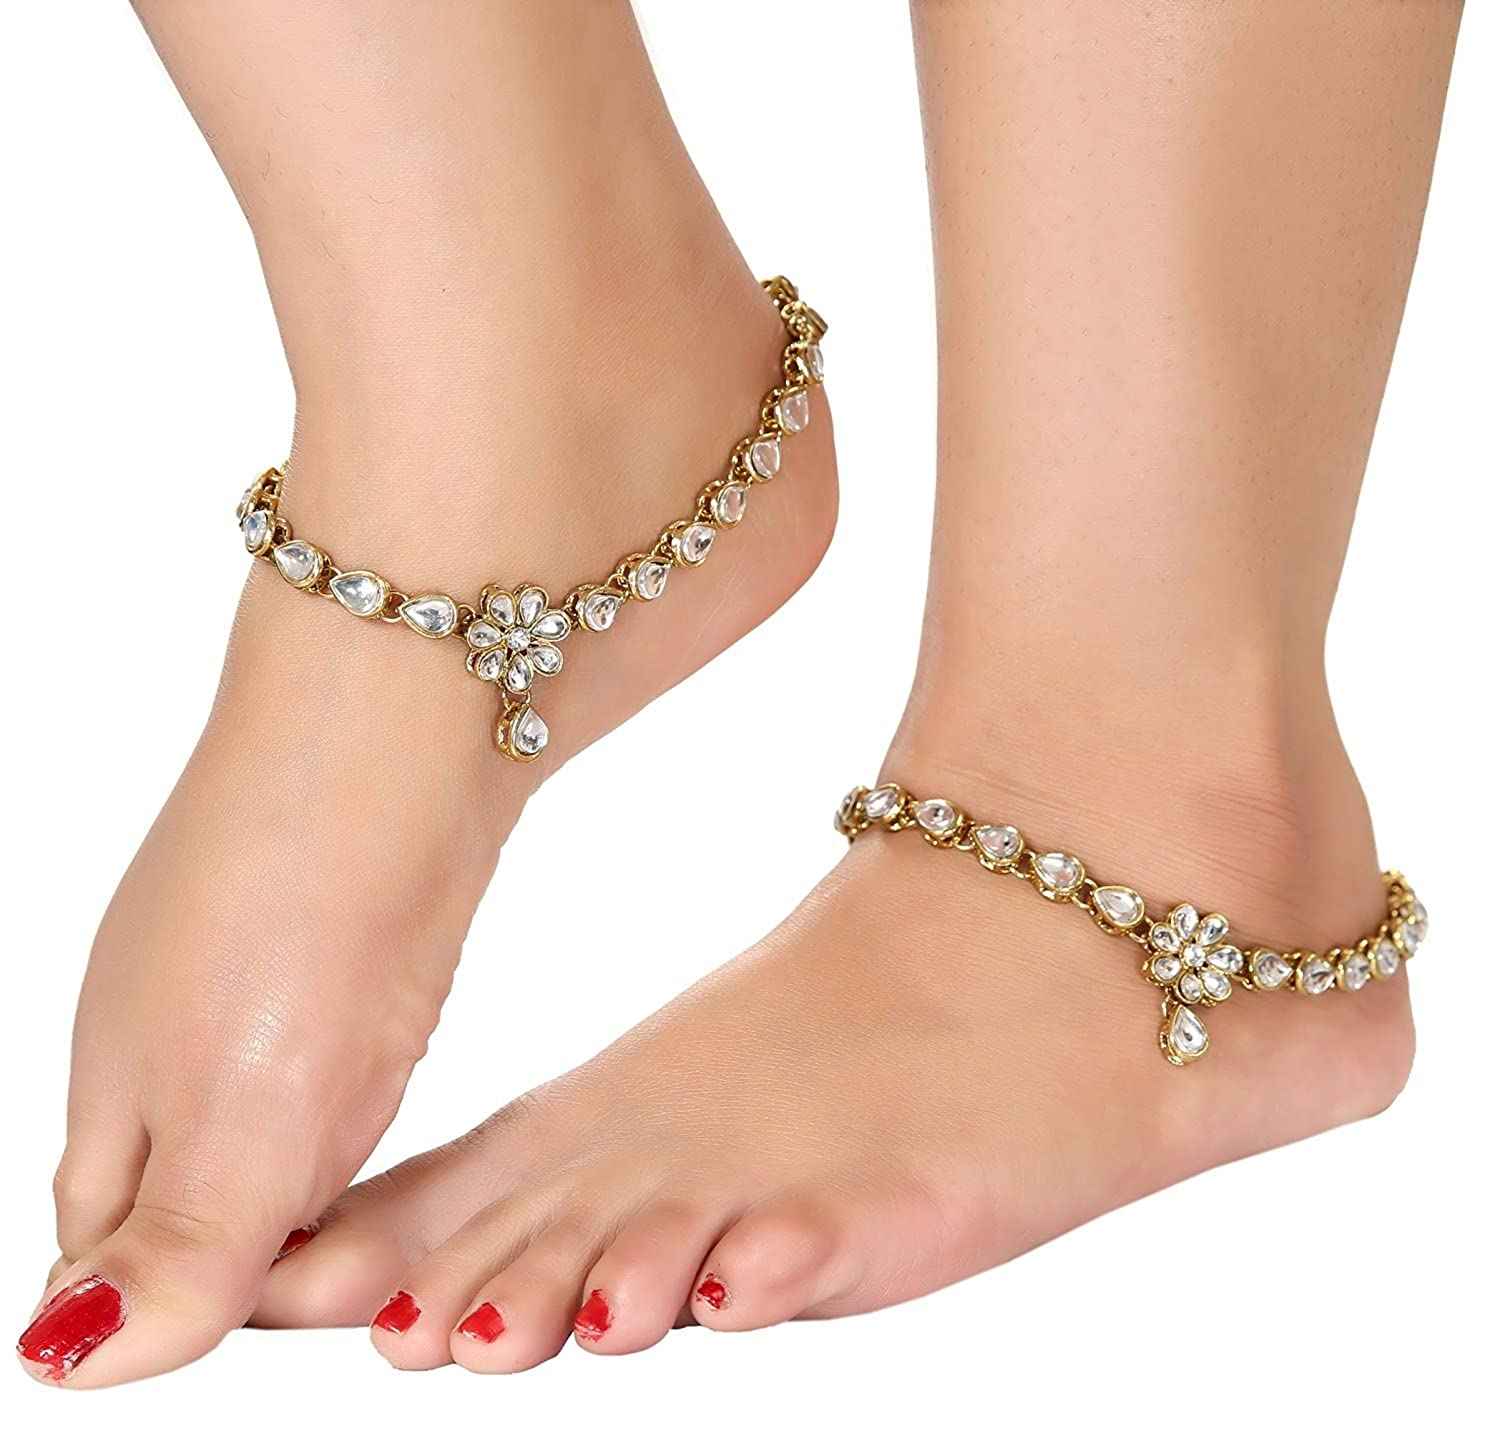 anklets cdcb alive to photos articles shop anklet wear ways forever the keep